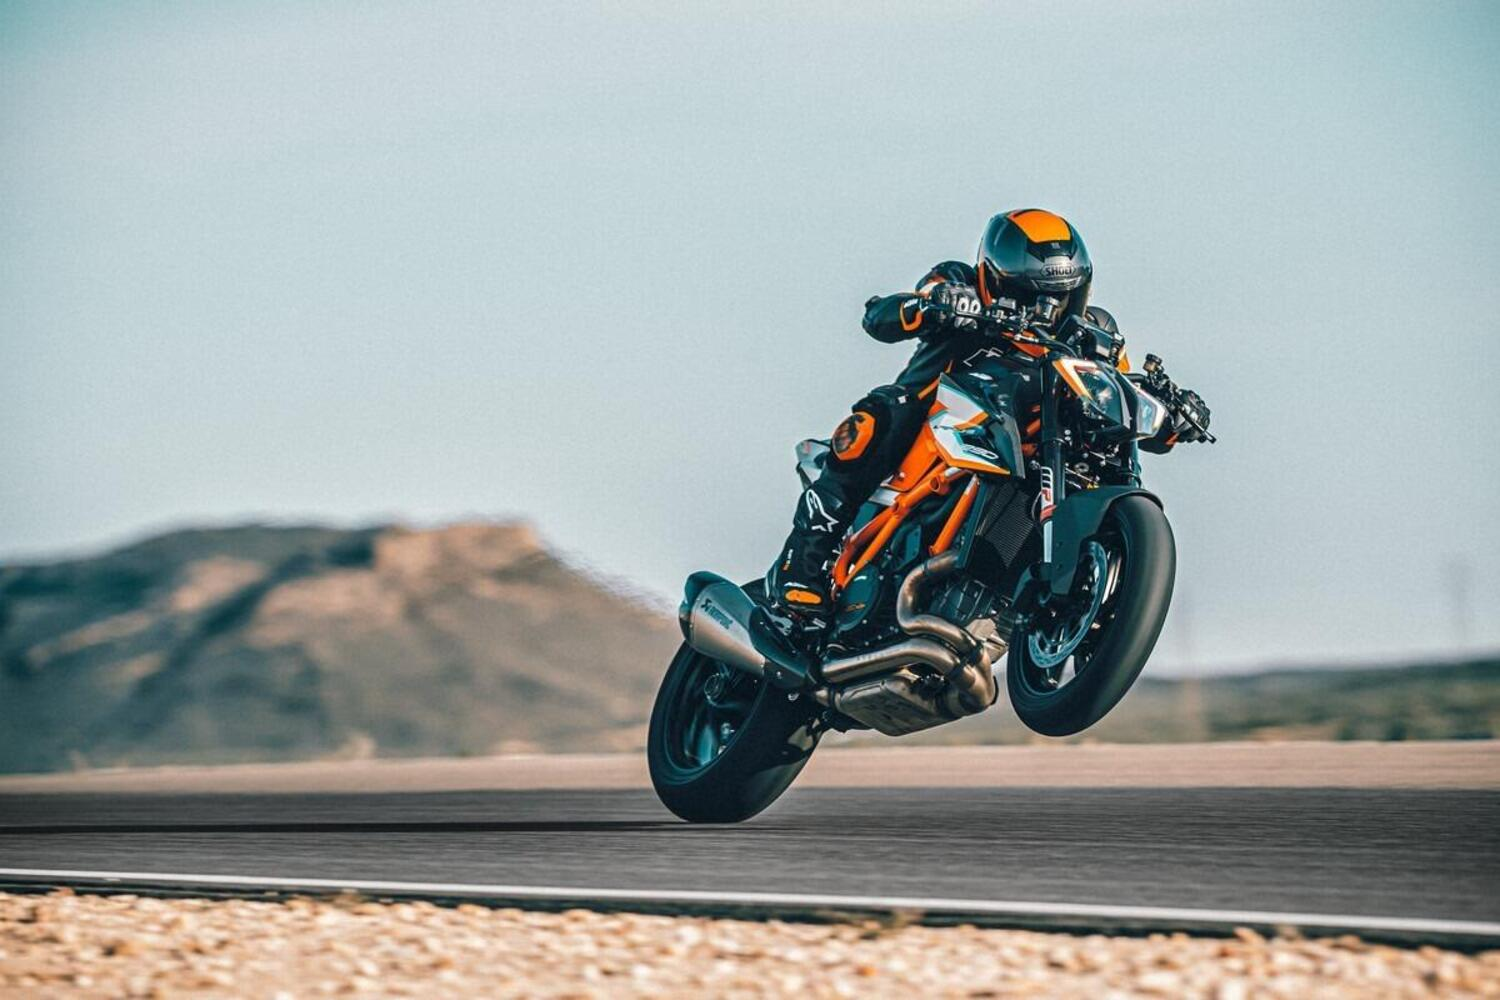 KTM 1290 Super Duke RR: i 500 esemplari sold out in 48 minuti